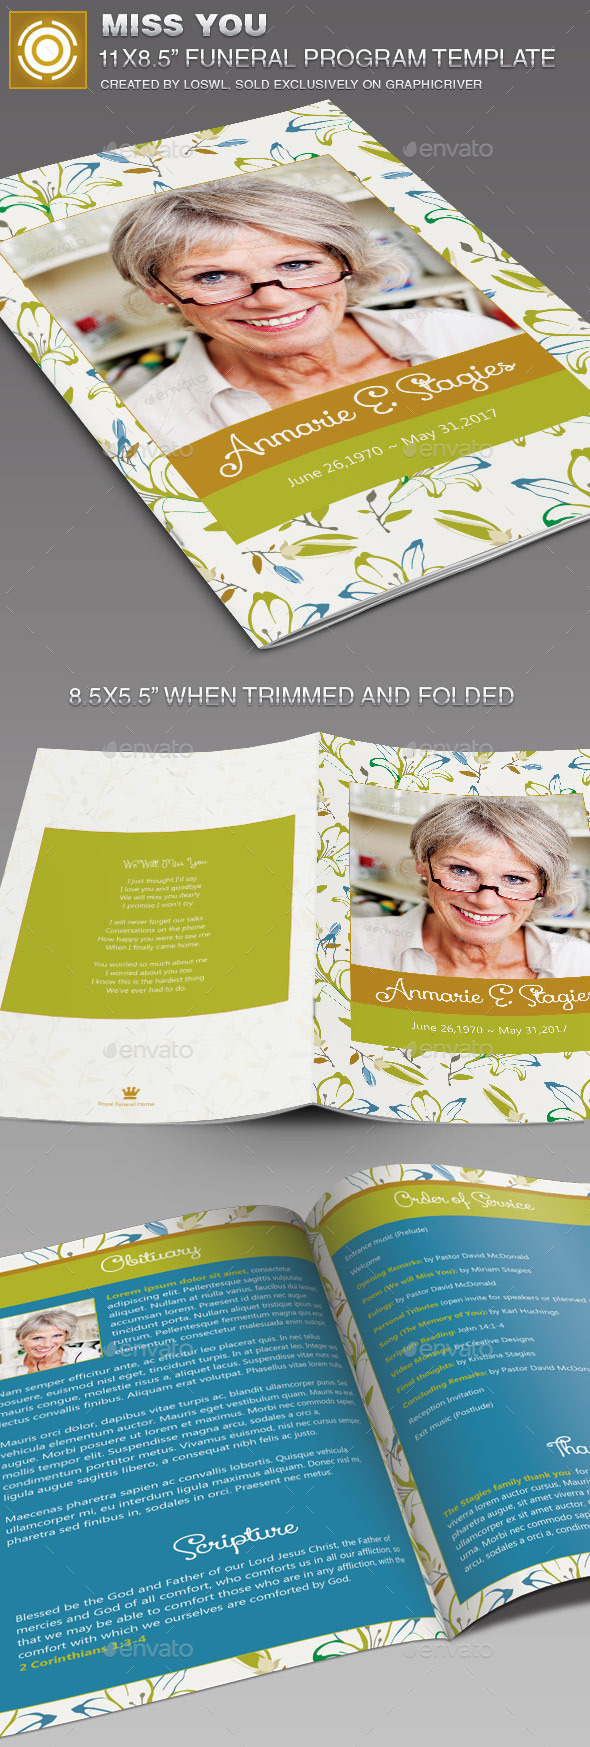 GraphicRiver Miss You Funeral Program Template 11465631